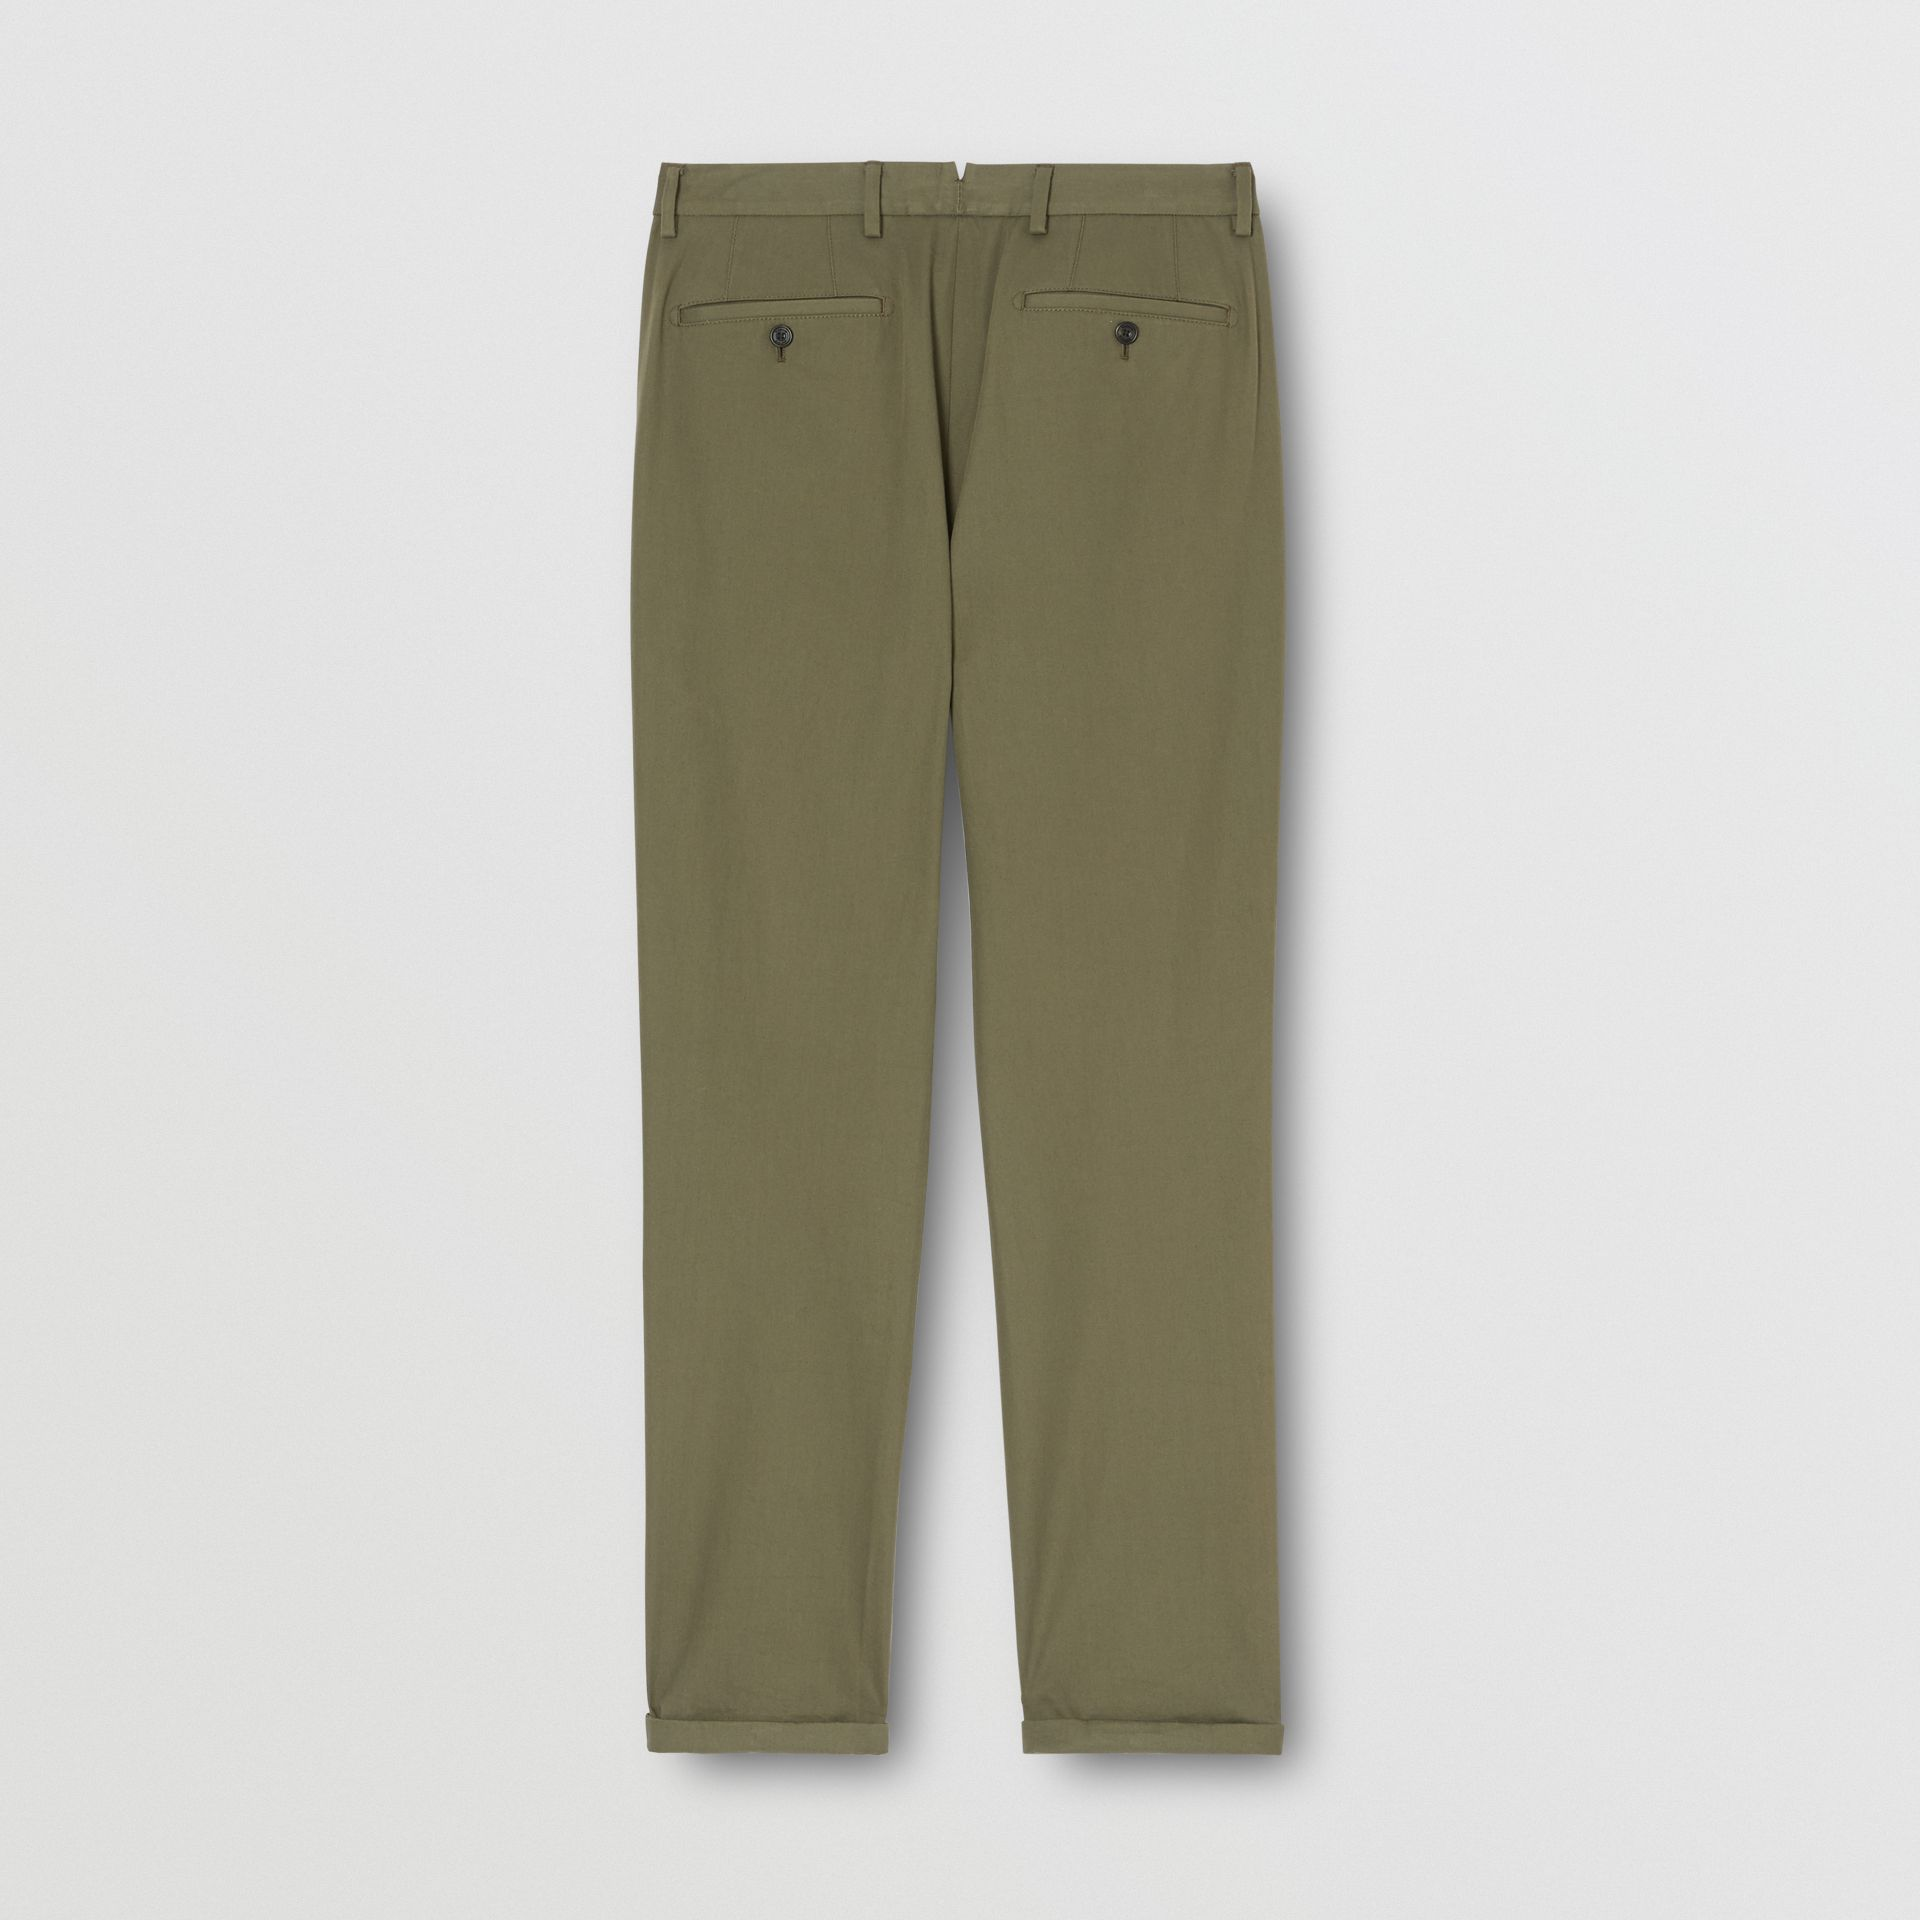 Slim Fit Cotton Chinos in Olive - Men | Burberry - gallery image 5